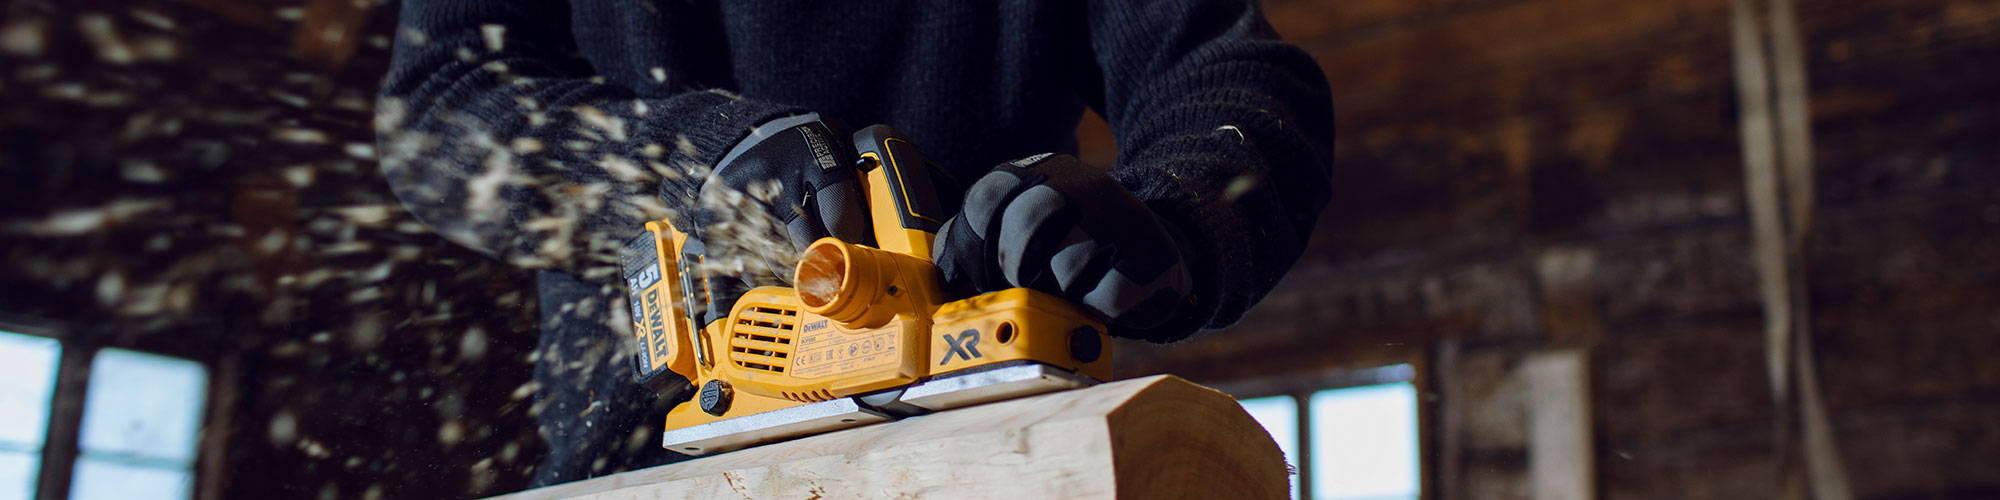 DeWALT DCP580 Cordless Brushless Planer – Top 5 Things You Need to Know